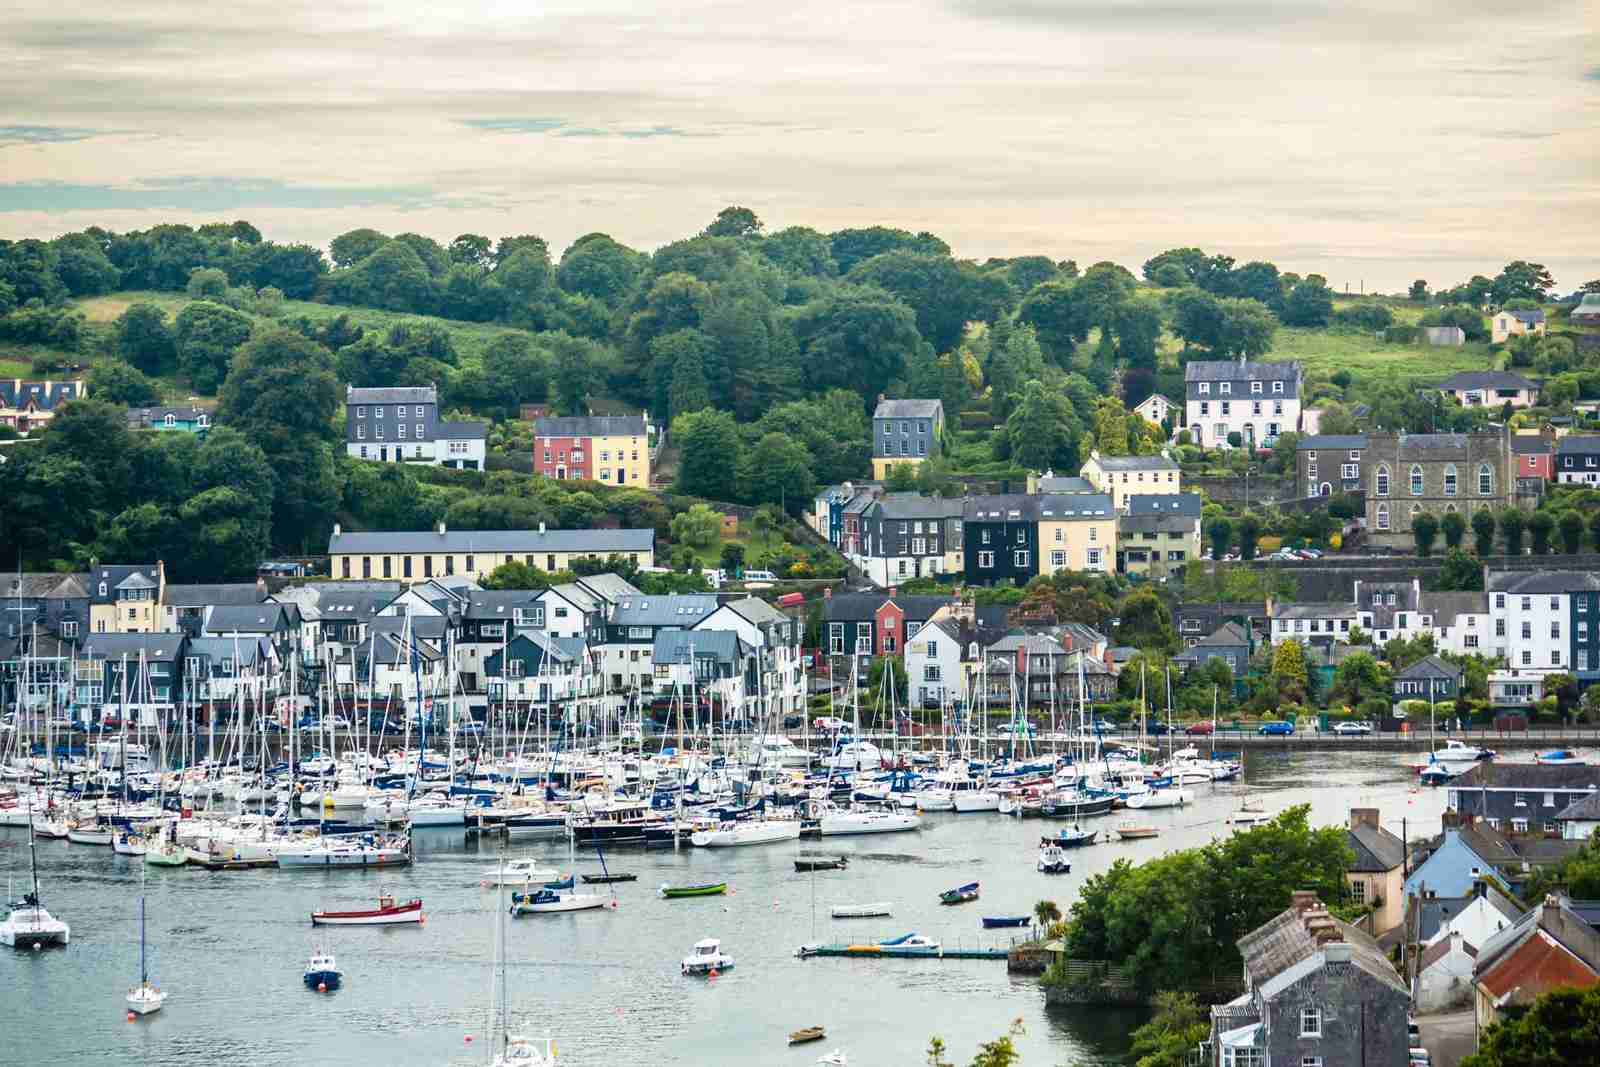 Kinsale Harbour, Ireland. (Photo by Eduardo Fonseca Arraes/Getty Images)